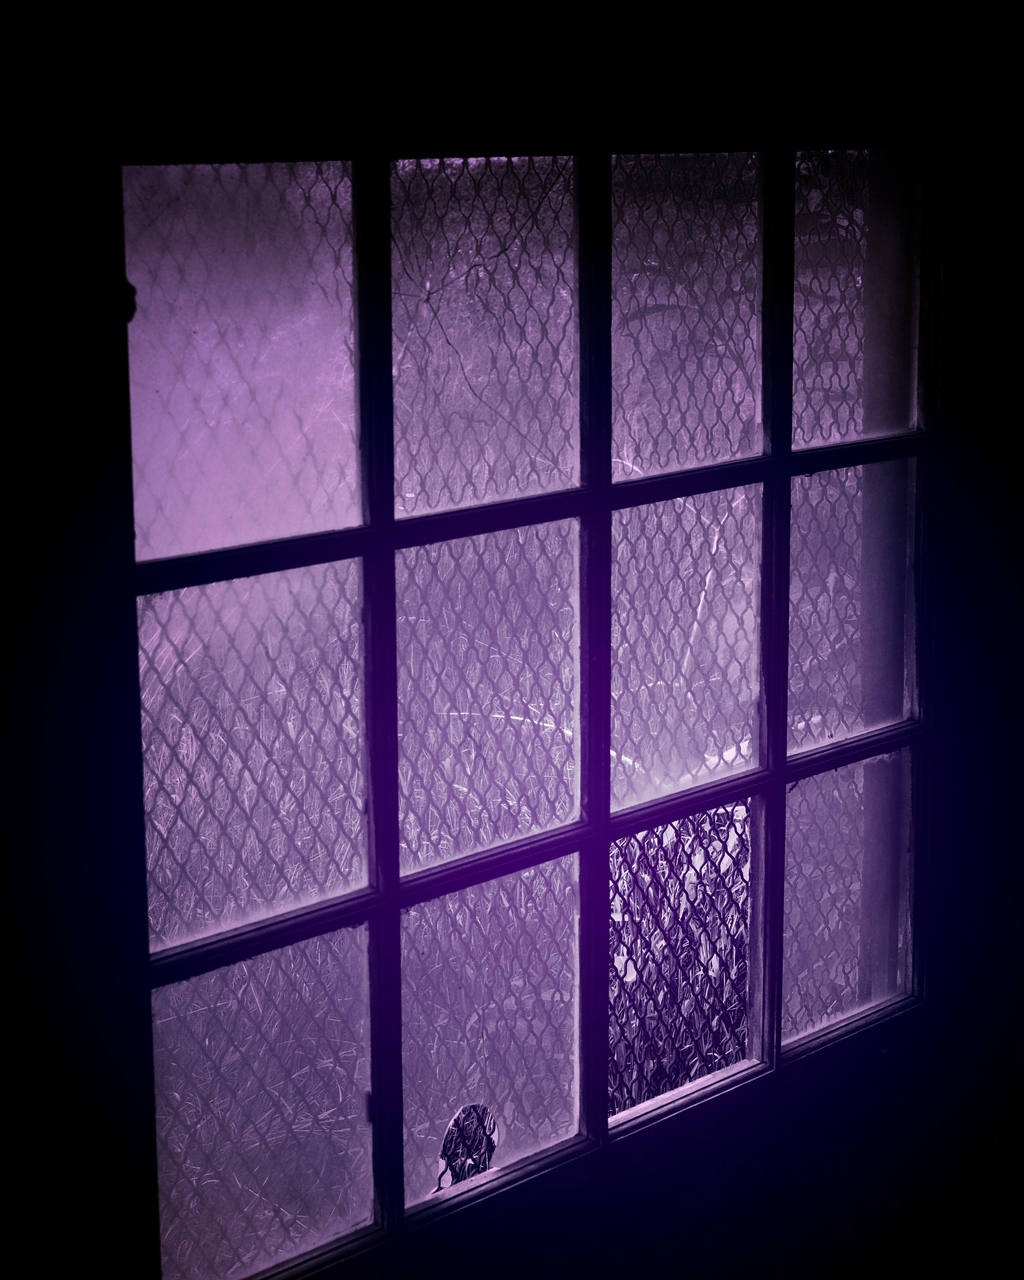 pretty purple glass - 1 of 8 picks for this week's Friday Favorites